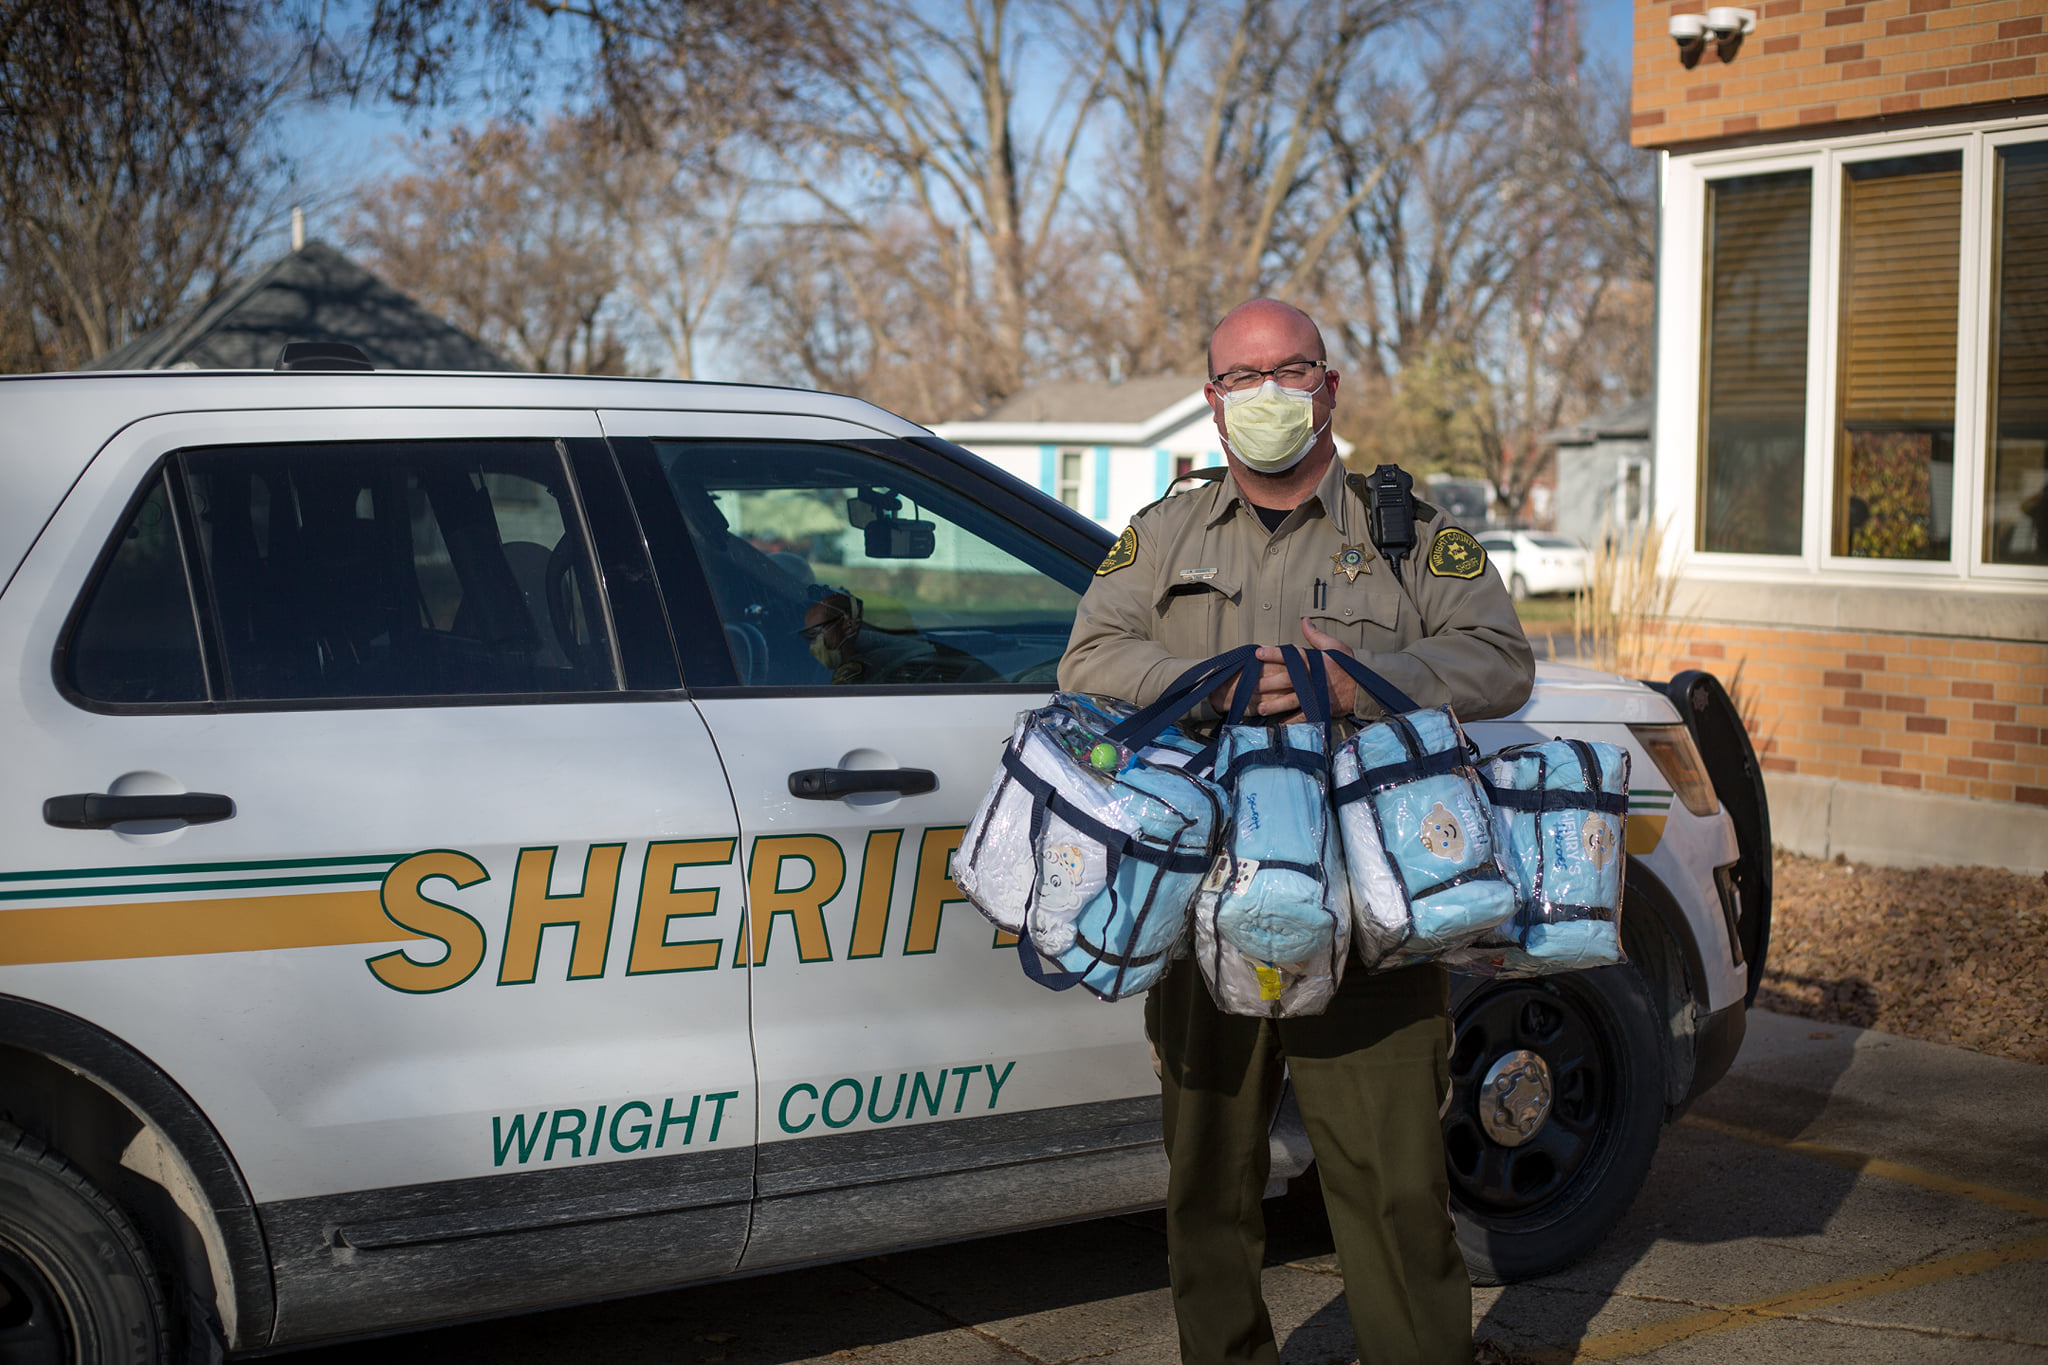 Wright Co. Sherriff